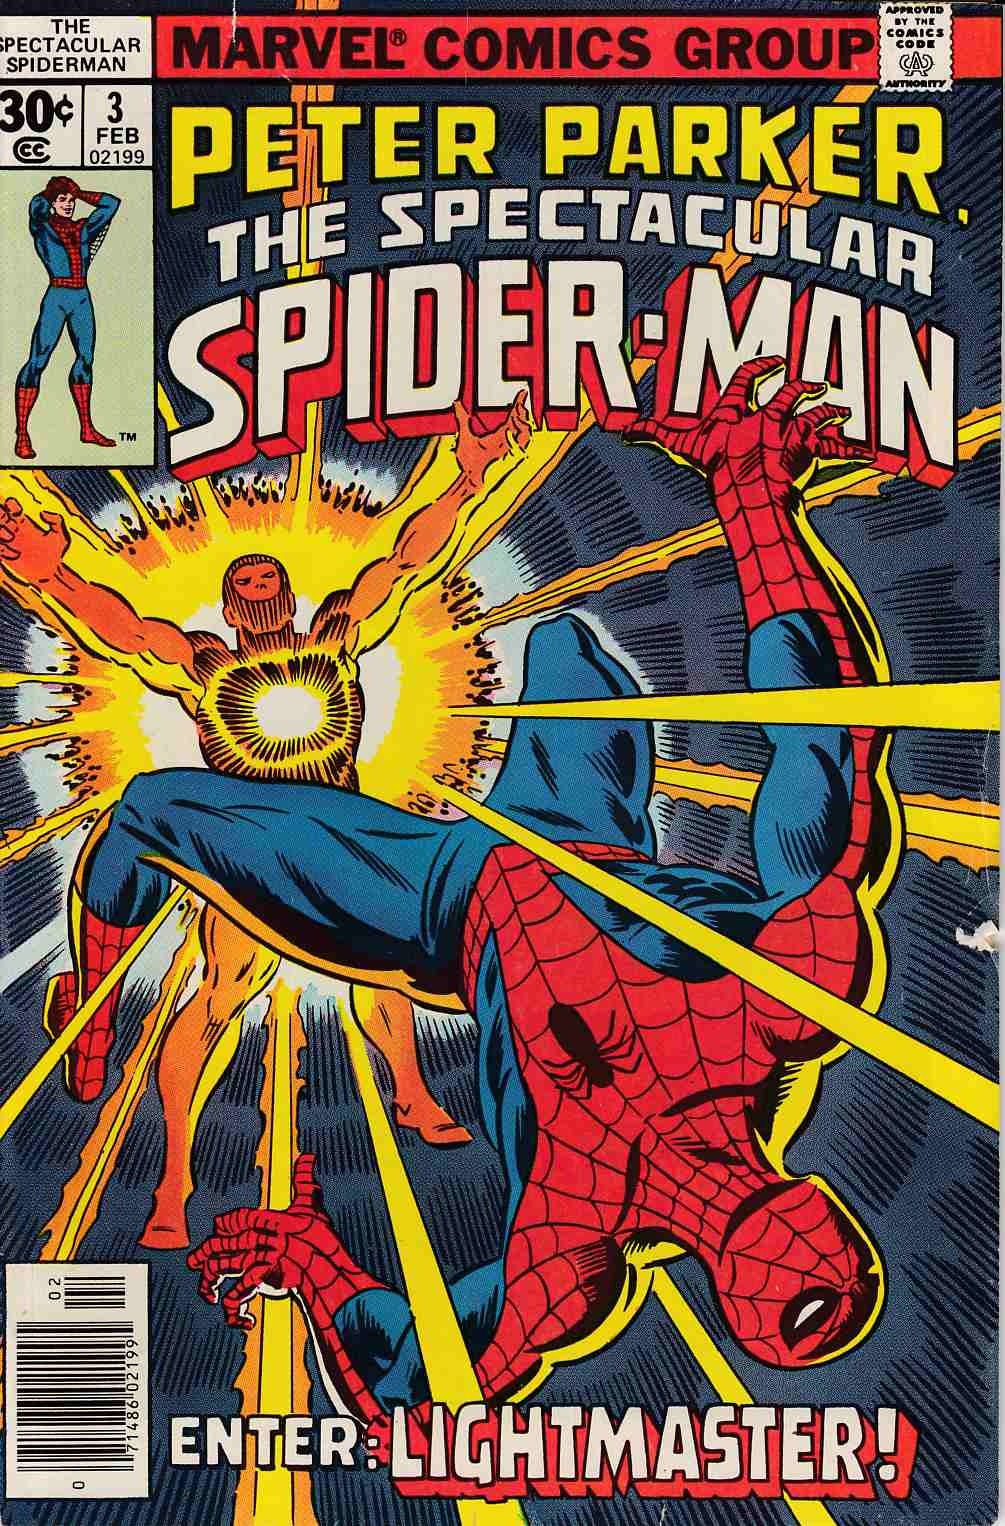 Peter Parker Spectacular Spider-Man #3 Fine (6.0) [Marvel Comic] THUMBNAIL